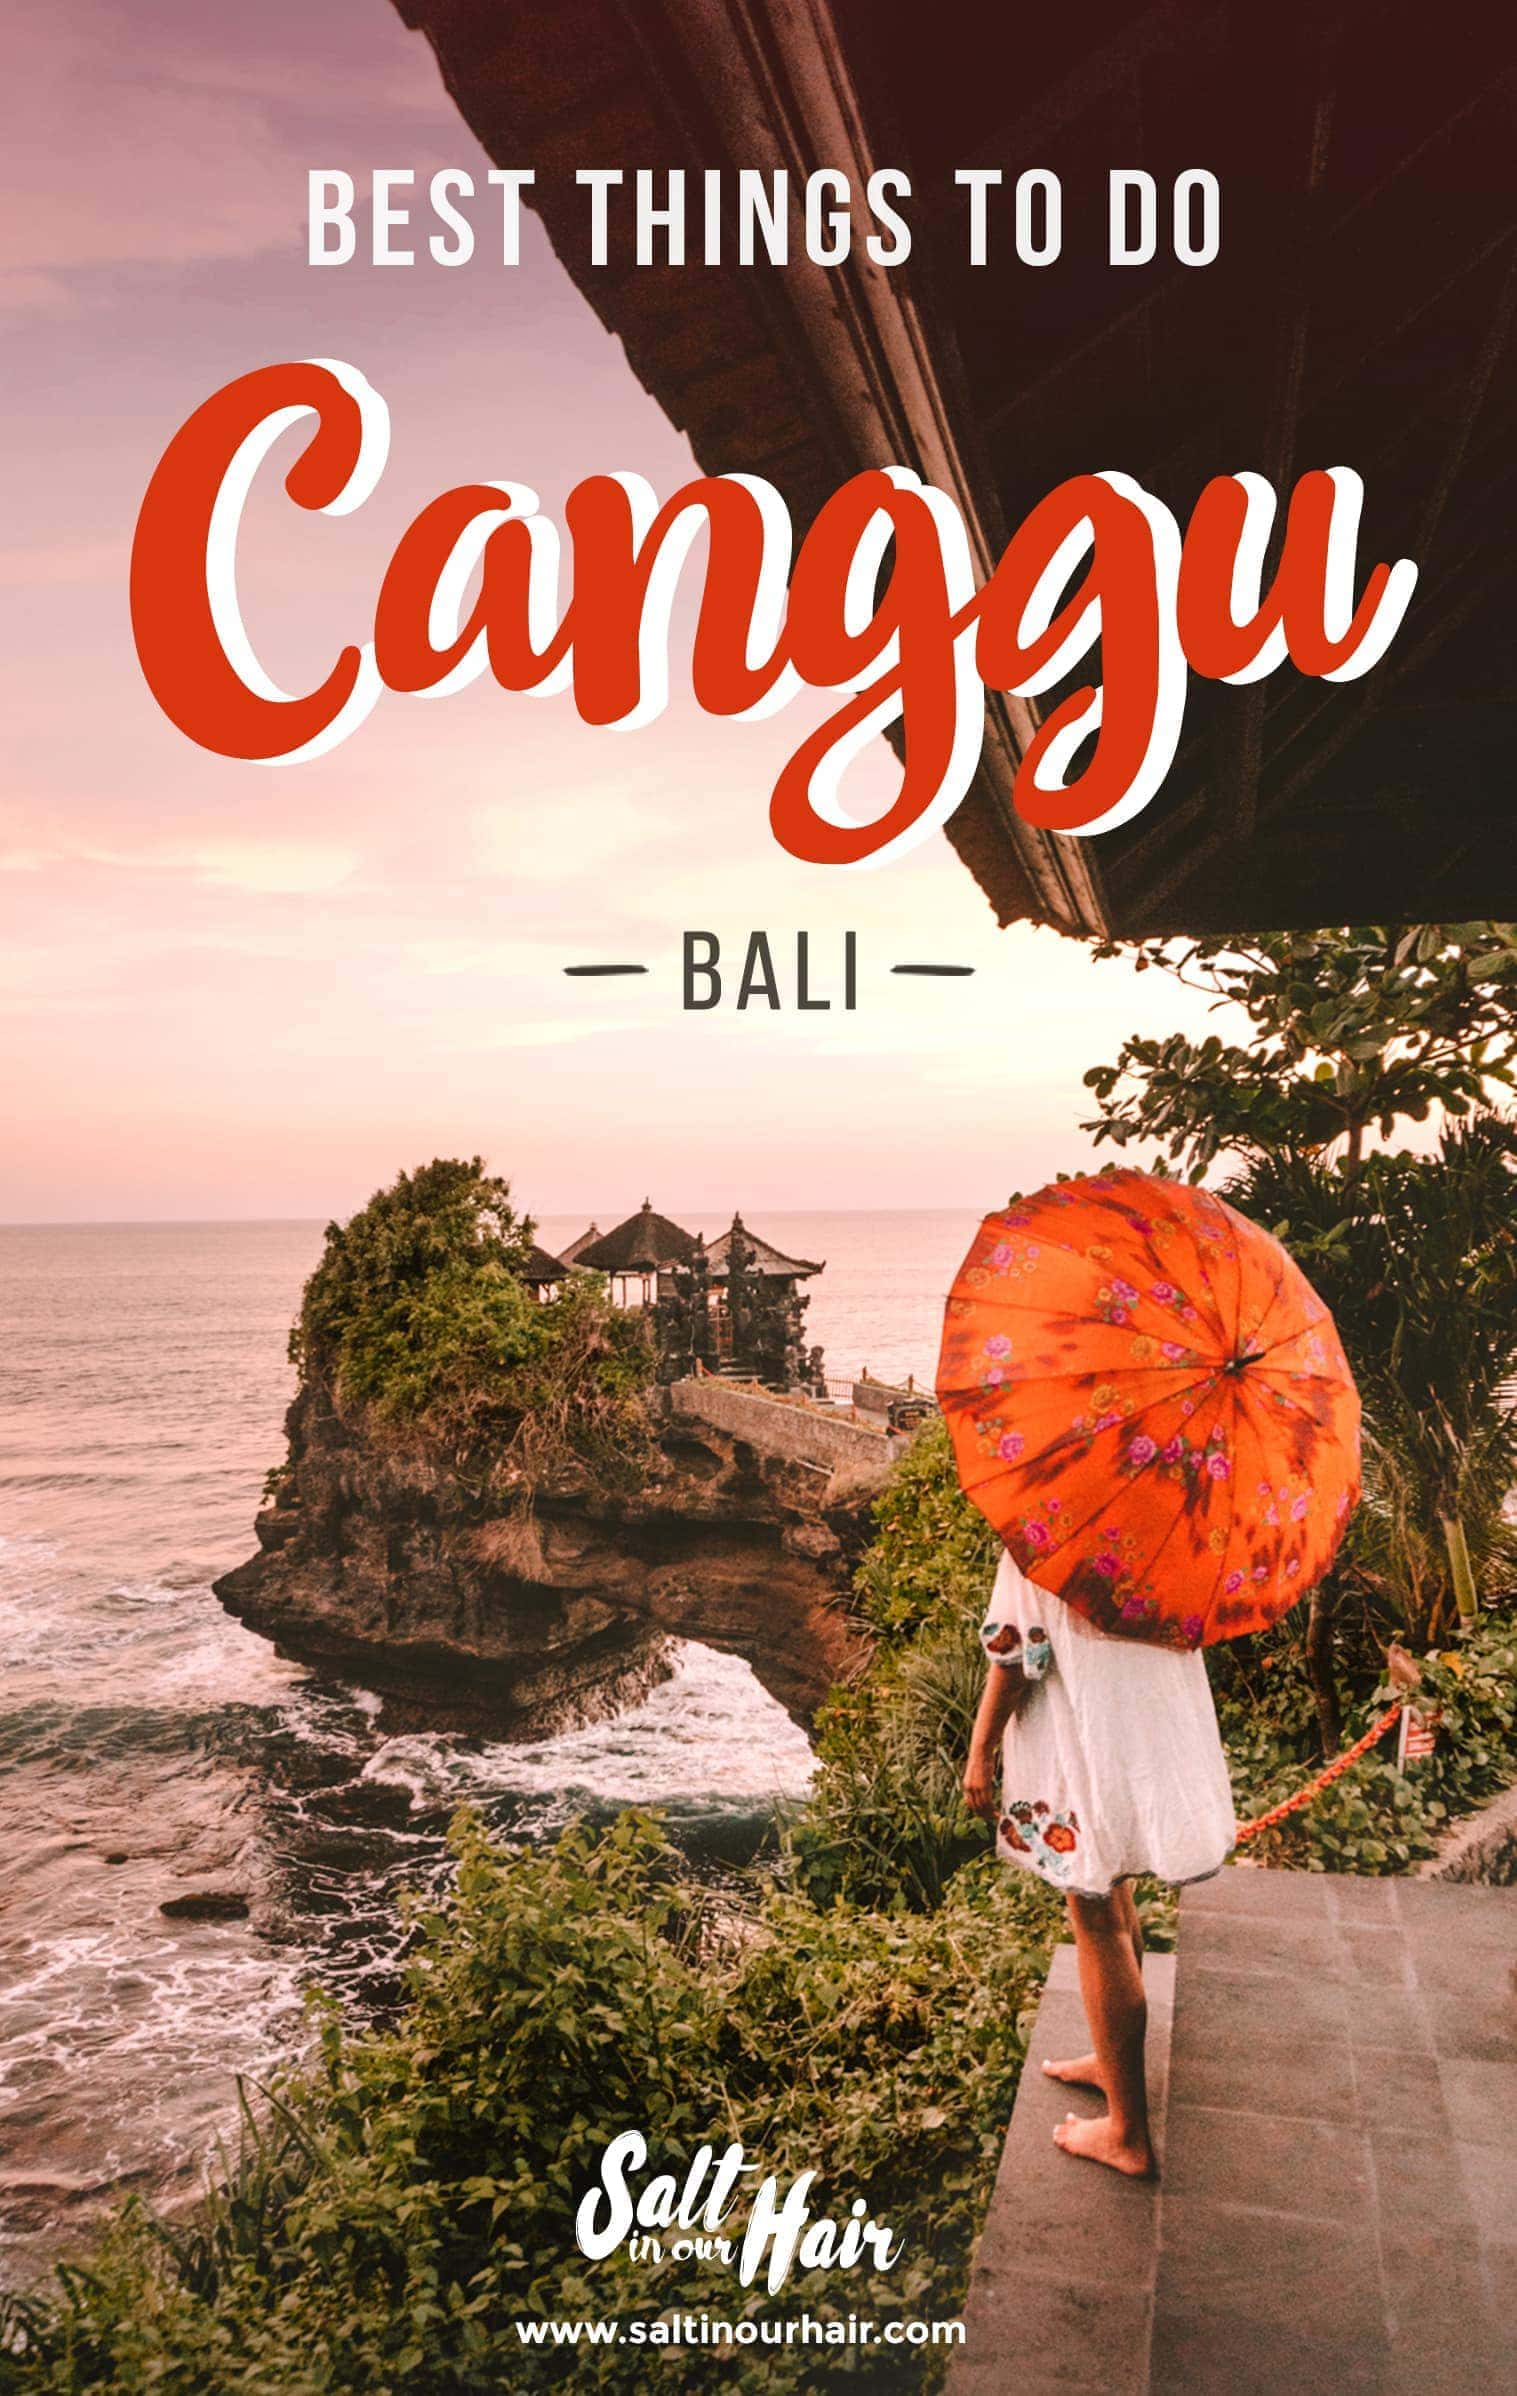 Bali Karte Canggu.Canggu Bali 13 X Things To Do In Canggu Bali The Full